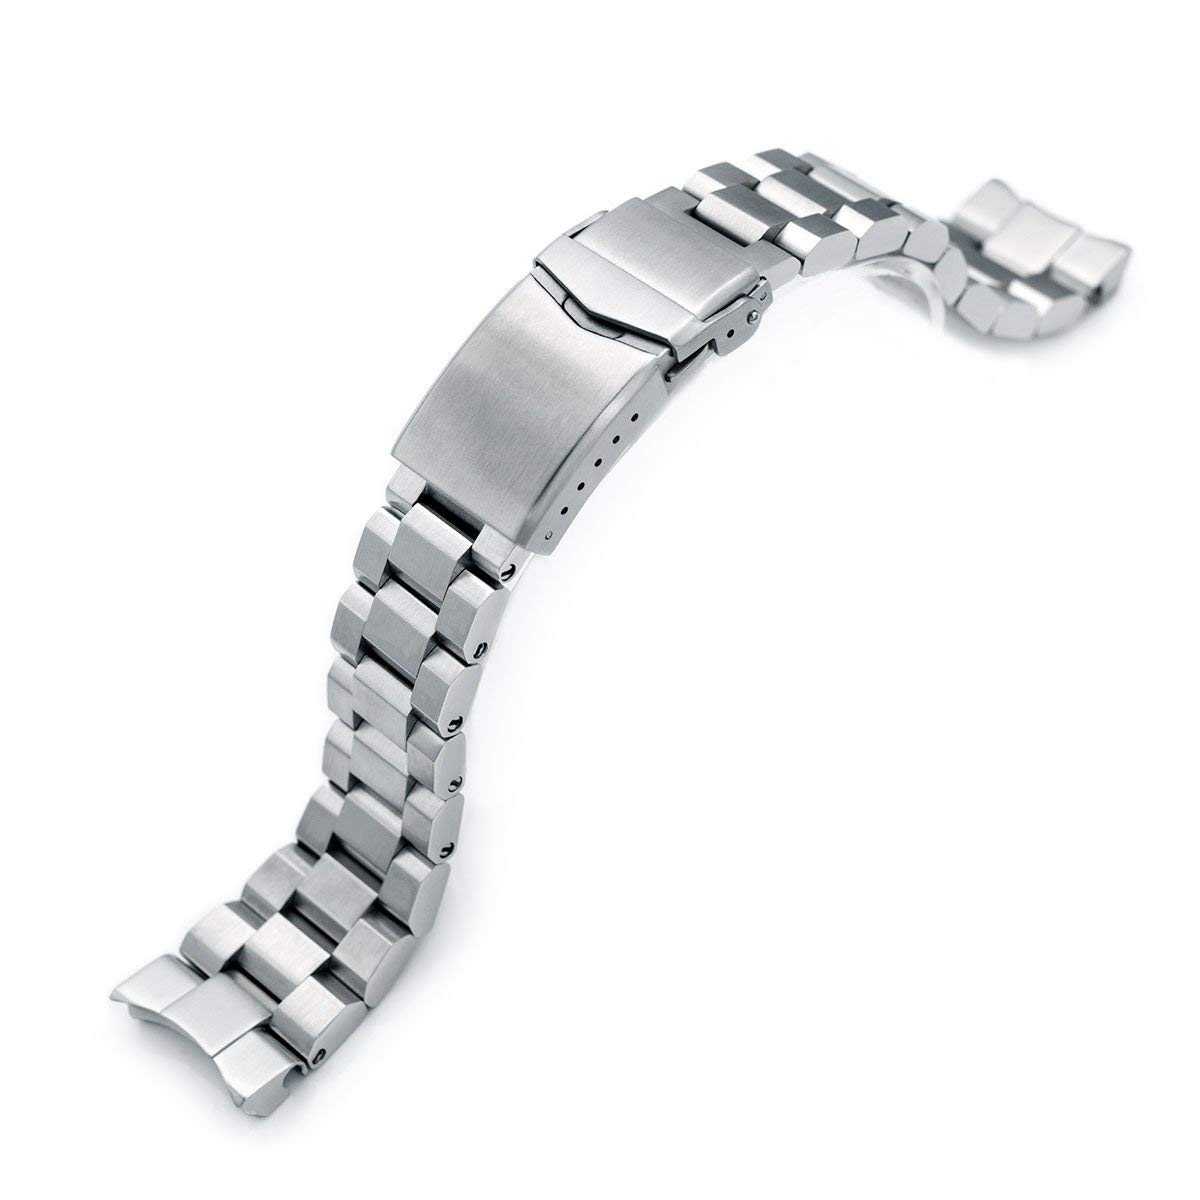 22mm Hexad Oyster 316L SS Watch Band for Seiko Samurai SRPB51, V-Clasp Button Double Lock